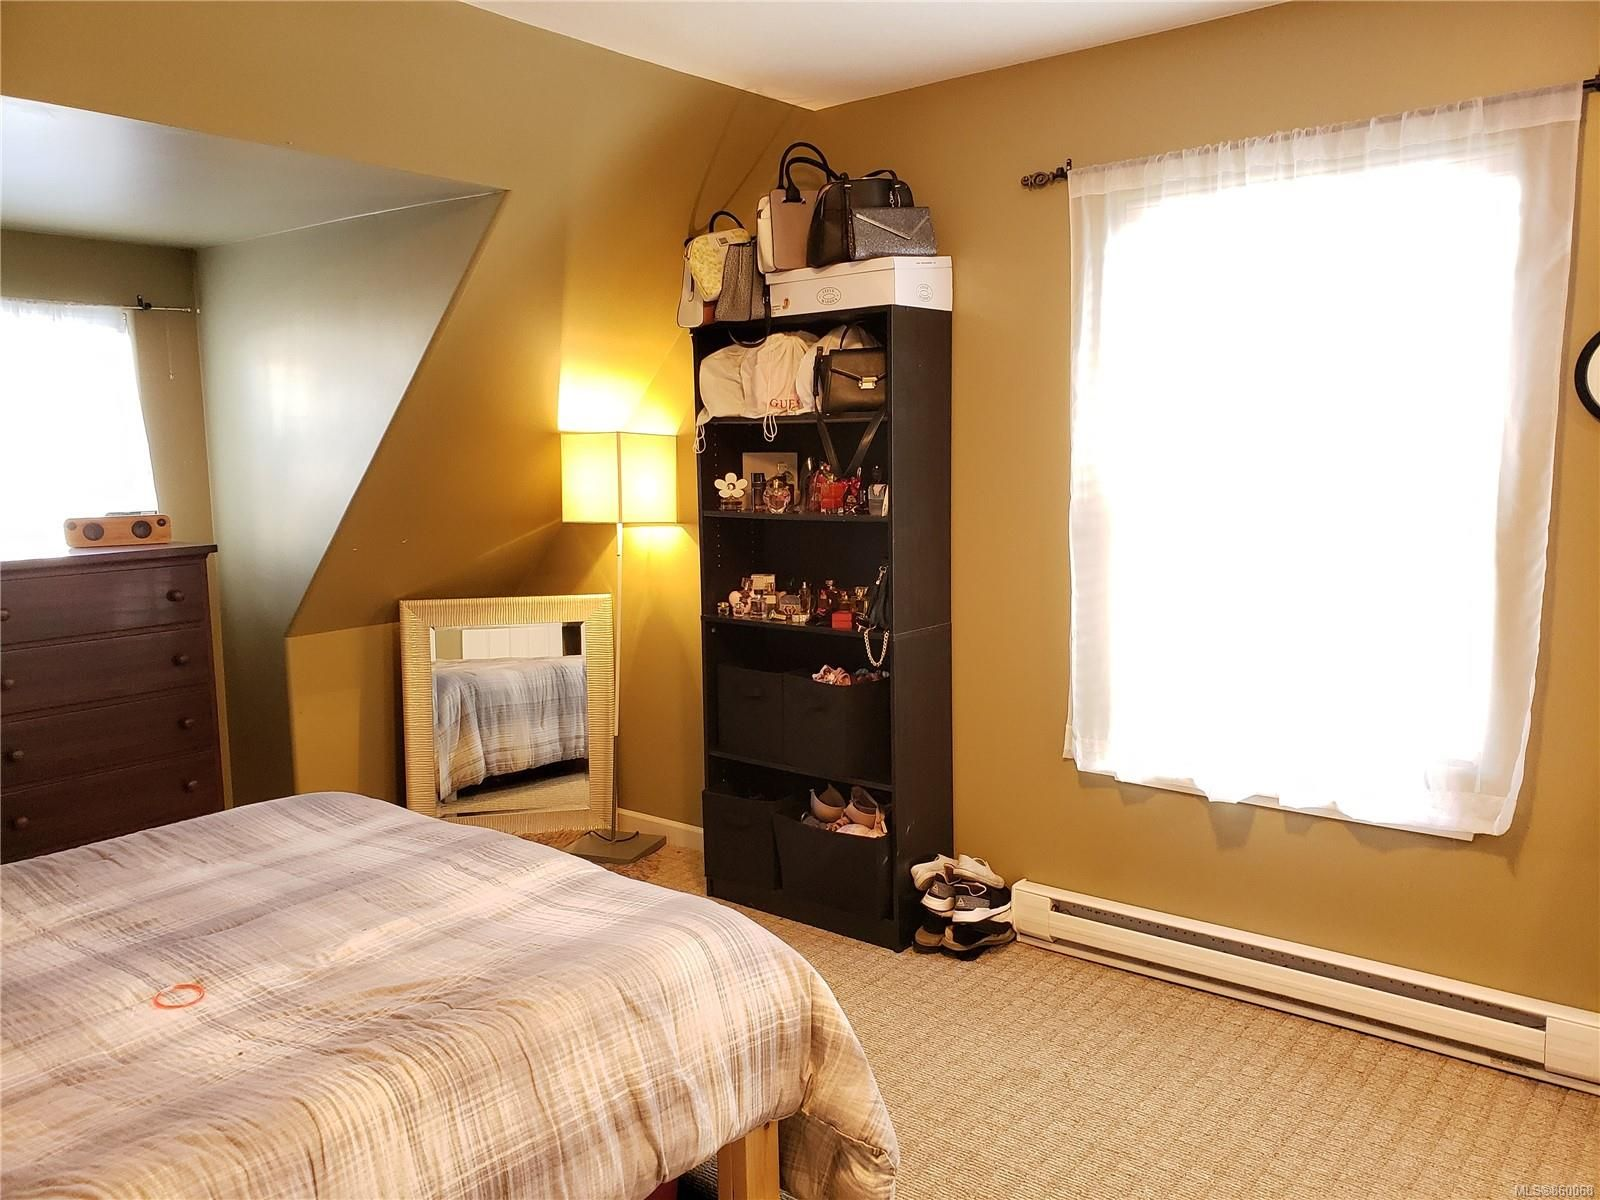 Photo 19: Photos: 105 2787 1st St in Courtenay: CV Courtenay City House for sale (Comox Valley)  : MLS®# 860068